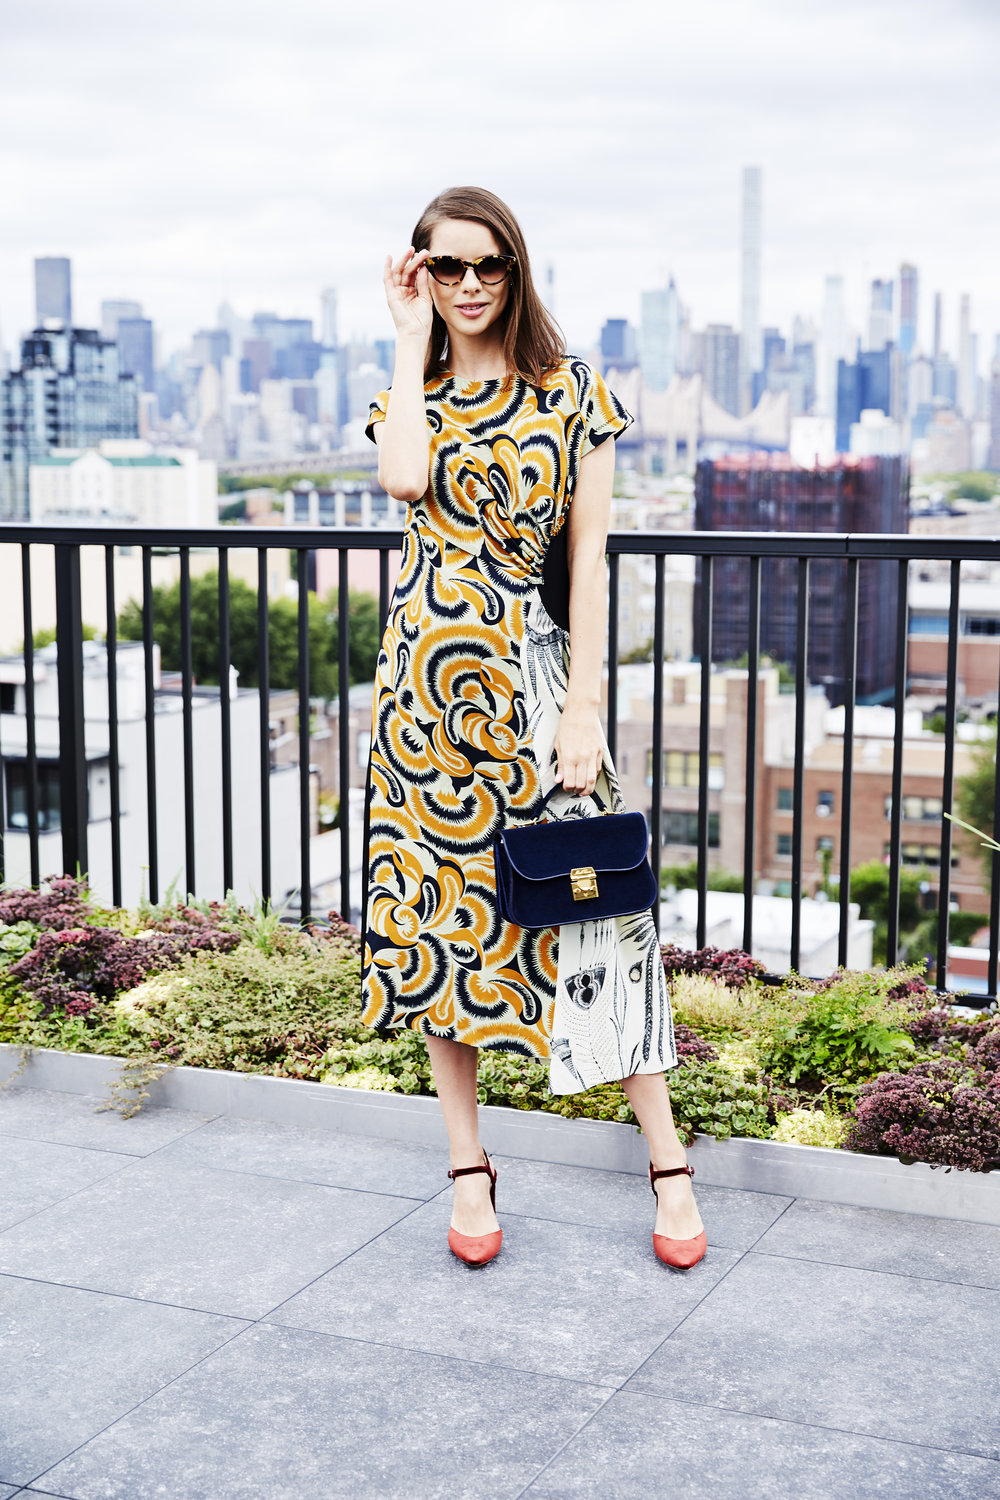 DRIES VAN NOTEN Floral & Fern-Print Dress  /  LOEFFLER RANDALL Leily Velvet Pumps  /  MARK CROSS Dorothy Velvet Shoulder Bag  /  BARTON PERREIRA Kismet Sunglasses  /  AGMES Gia Earrings   I've always been a fan of  Dries Van Noten 's bold prints. They're a great way to make a statement with minimum effort. I'd wear this look to daytime meetings, but it works for drinks with friends, too. It's important to maintain a balance, so with a statement dress like that, make sure your accessories and especially your shoes are emphasizing it, not competing with it. I love the texture and color of these  Loeffler Randall heels .